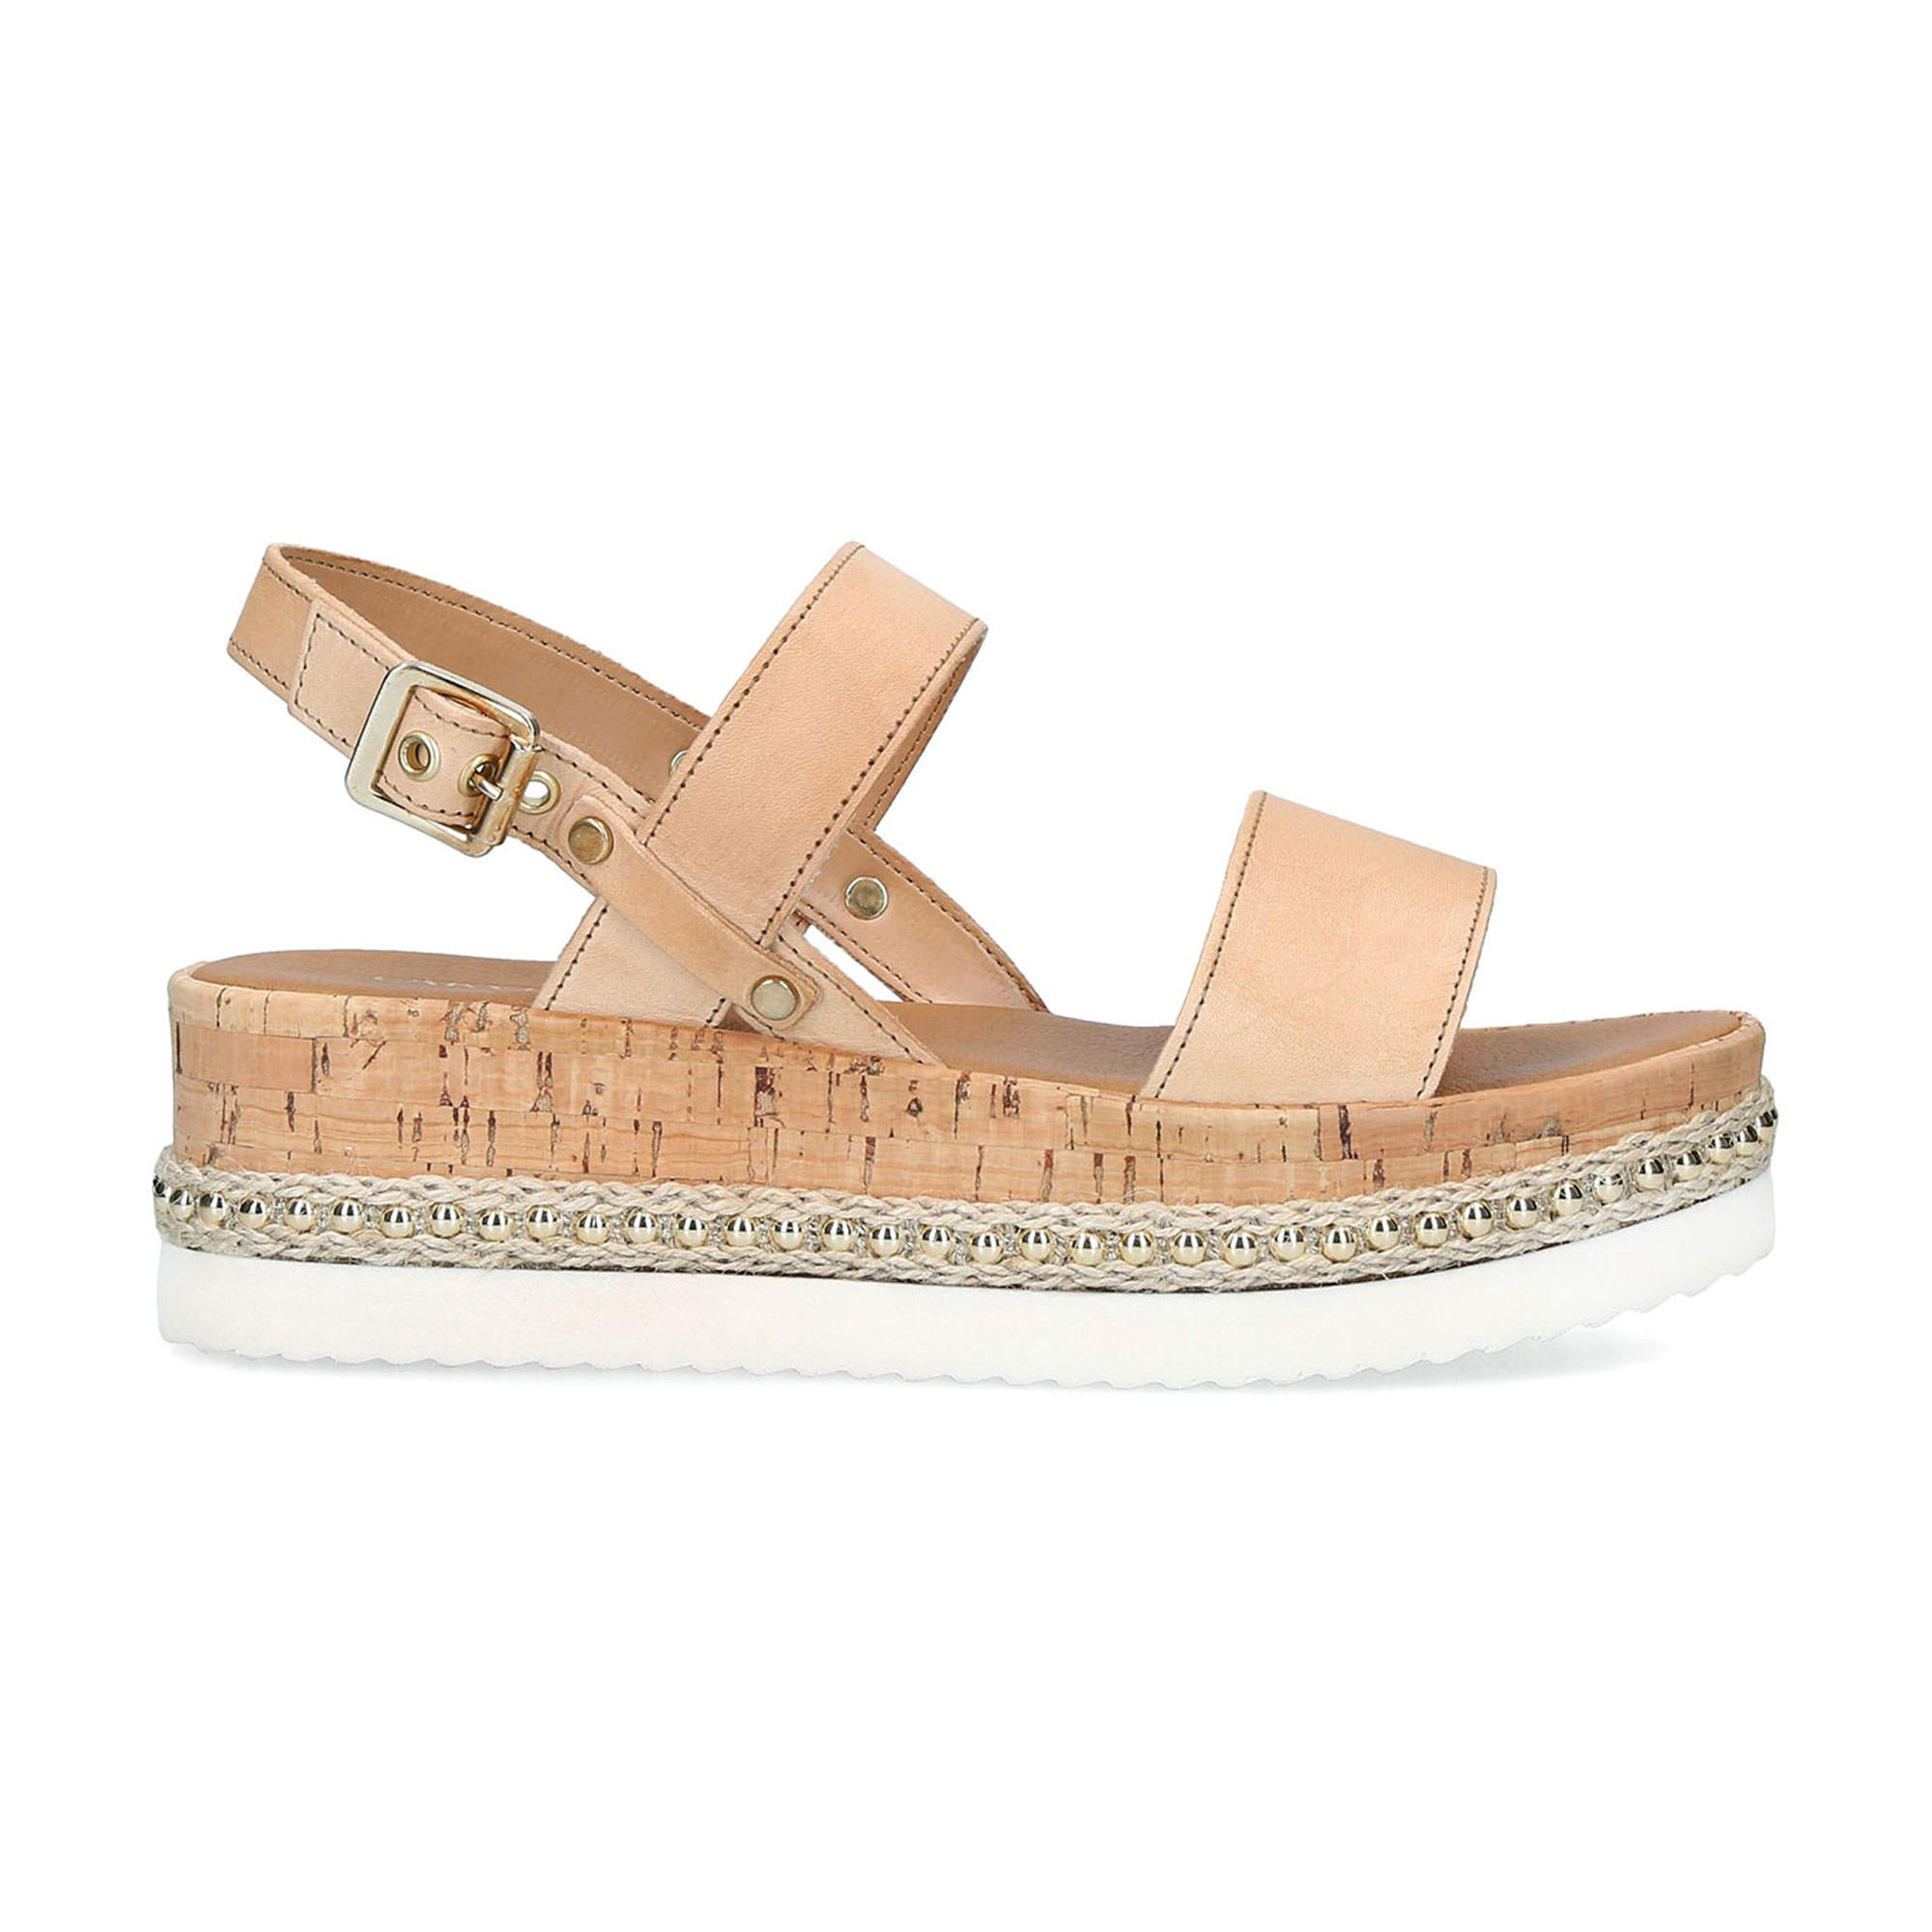 60002783648109NEUTRAL: Krash Sandal